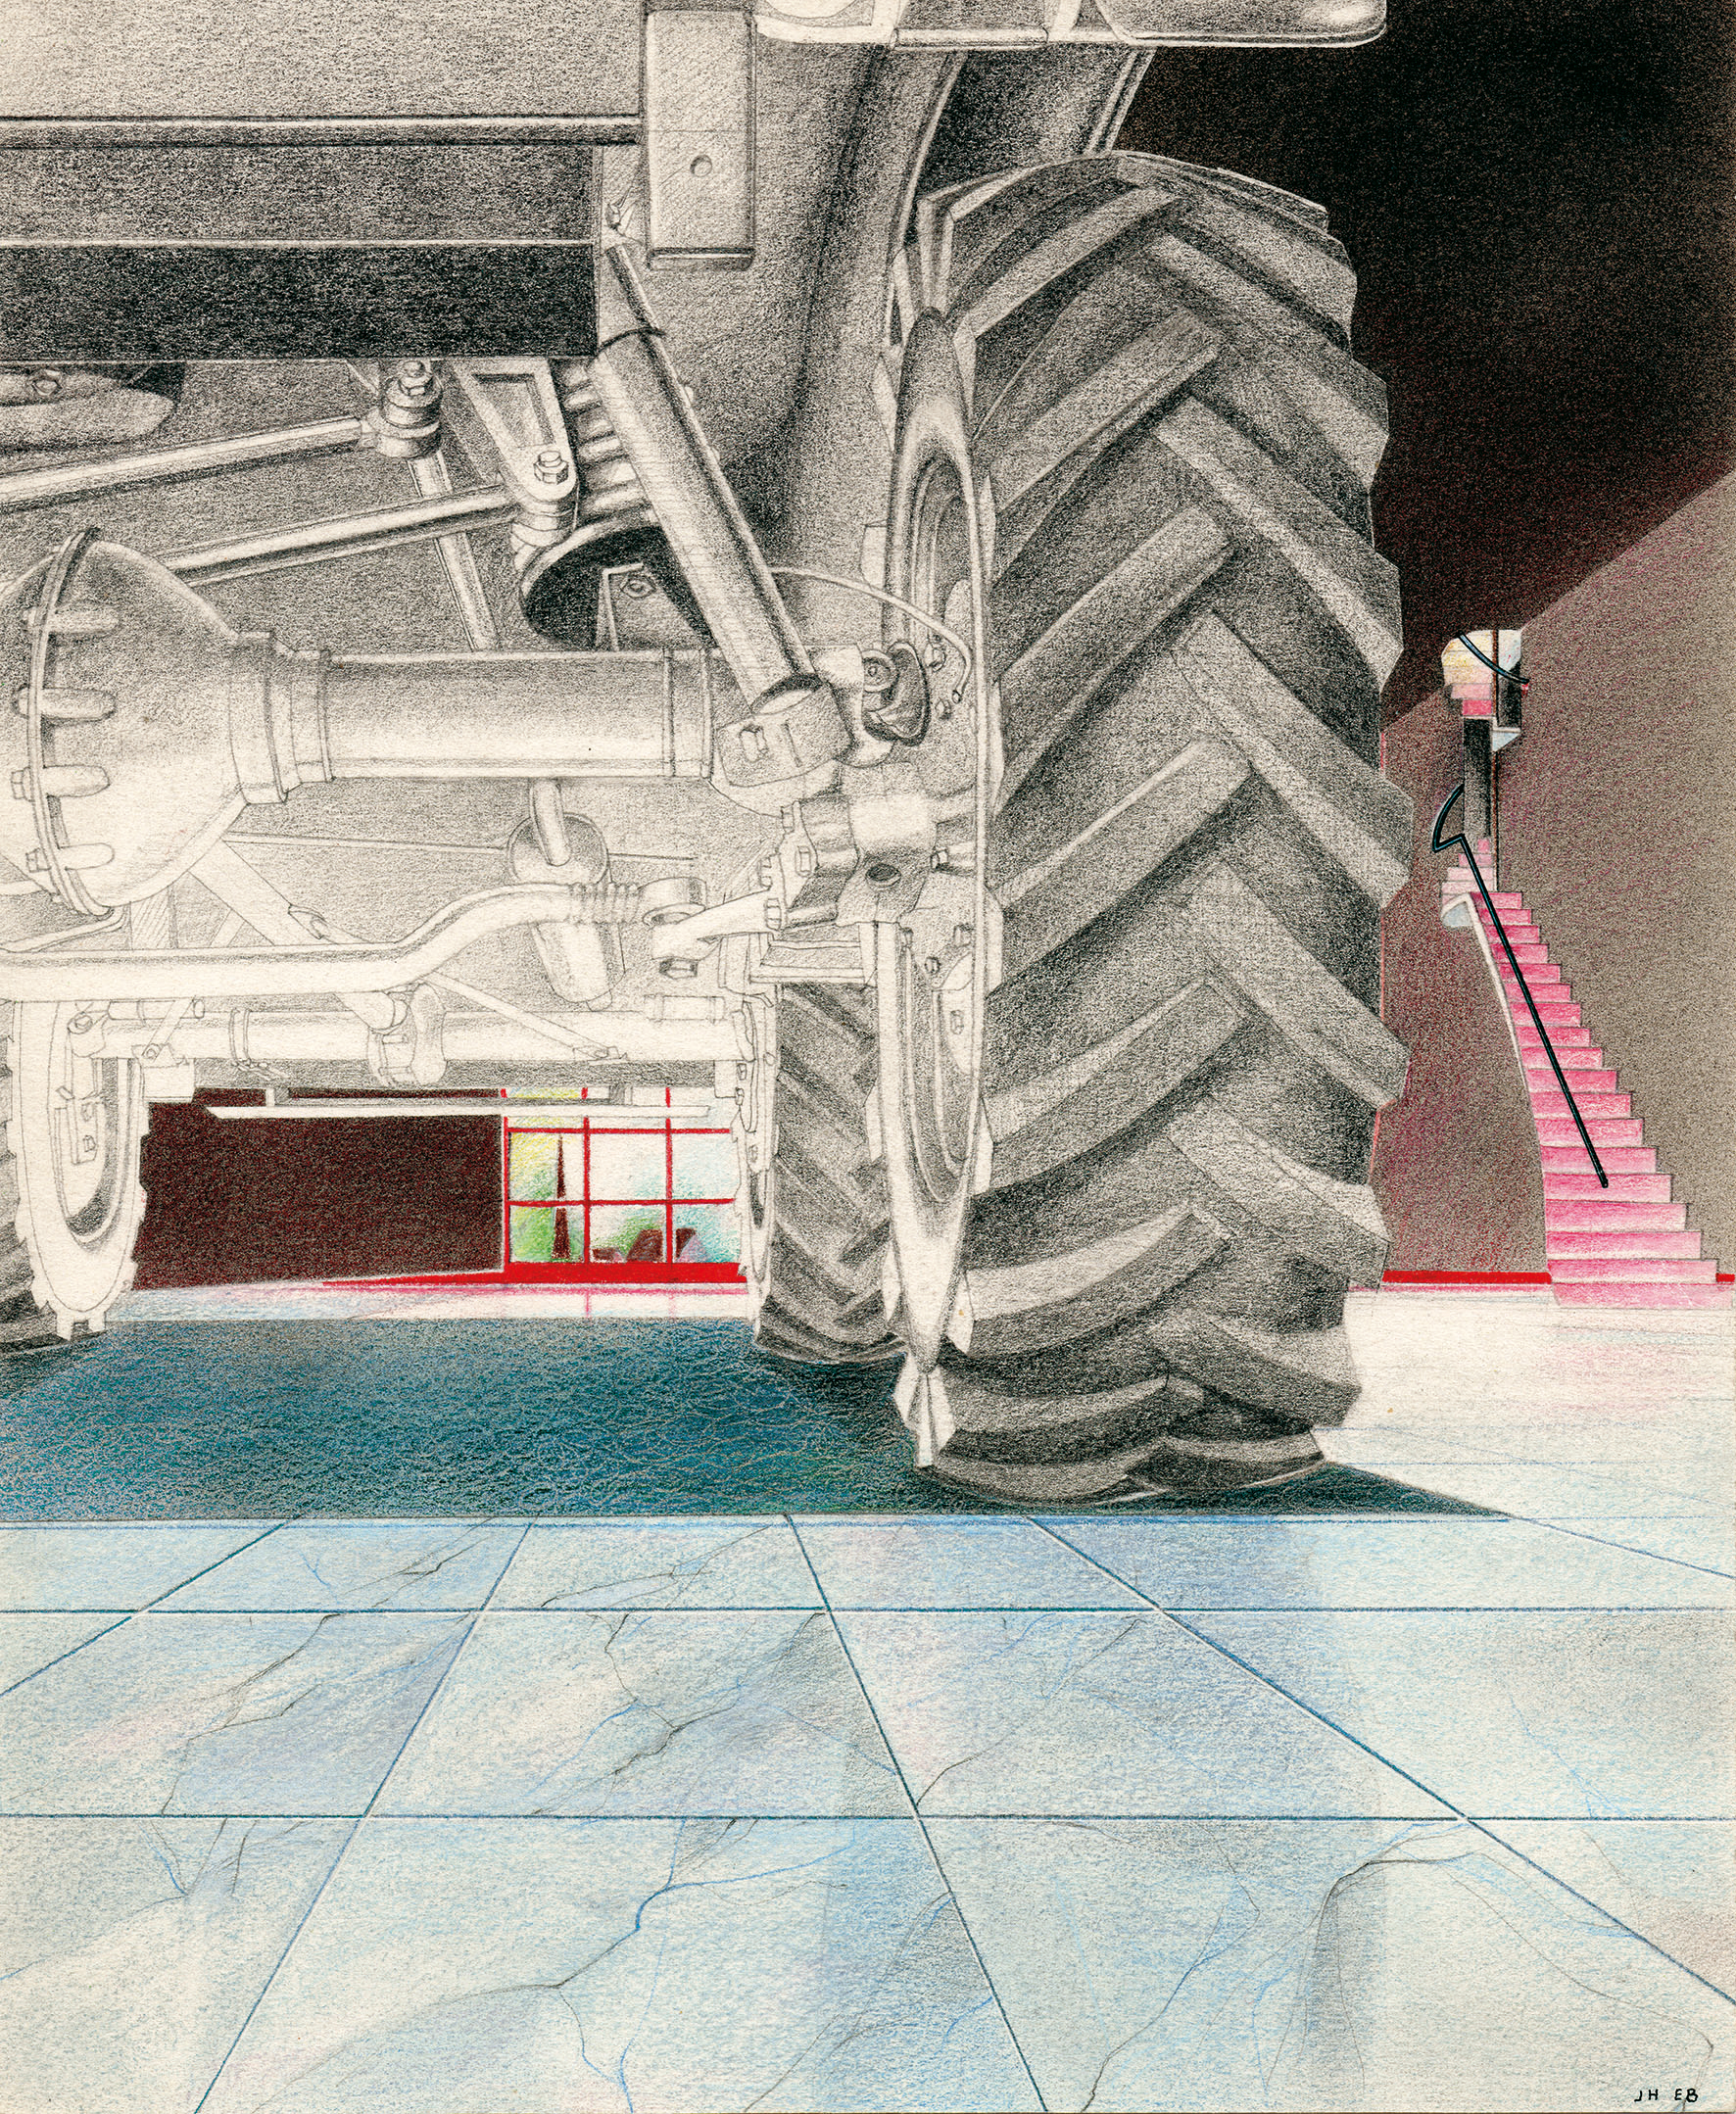 Reminiscences / The furniture-car,  1985 Airbrush painting, pencil on paper 25.7 x 21.2 cm